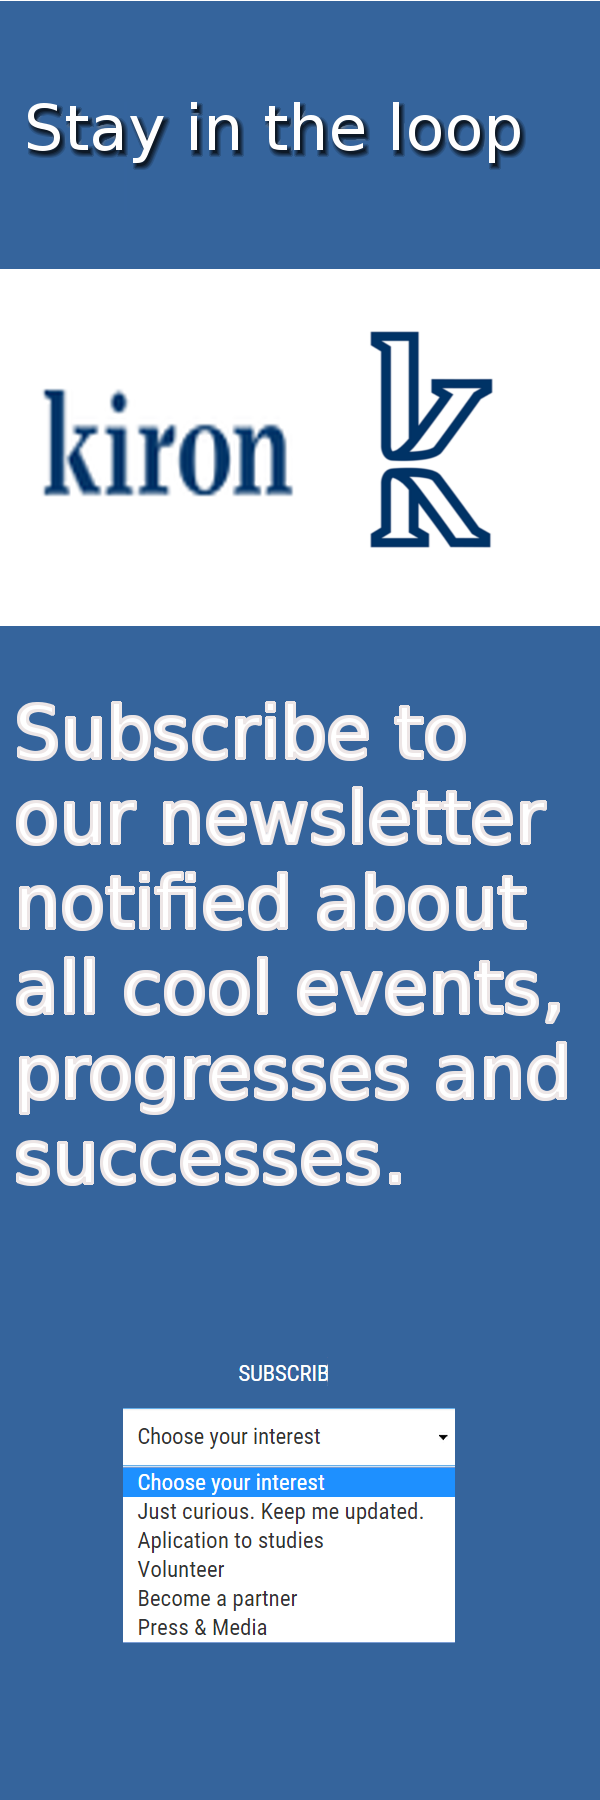 Stay in the loop Subscribe to our newsletter to always get the most recent updates of our journey with the Kiron. Get notified about all cool events, progresses and successes.get in from here https://kiron.university